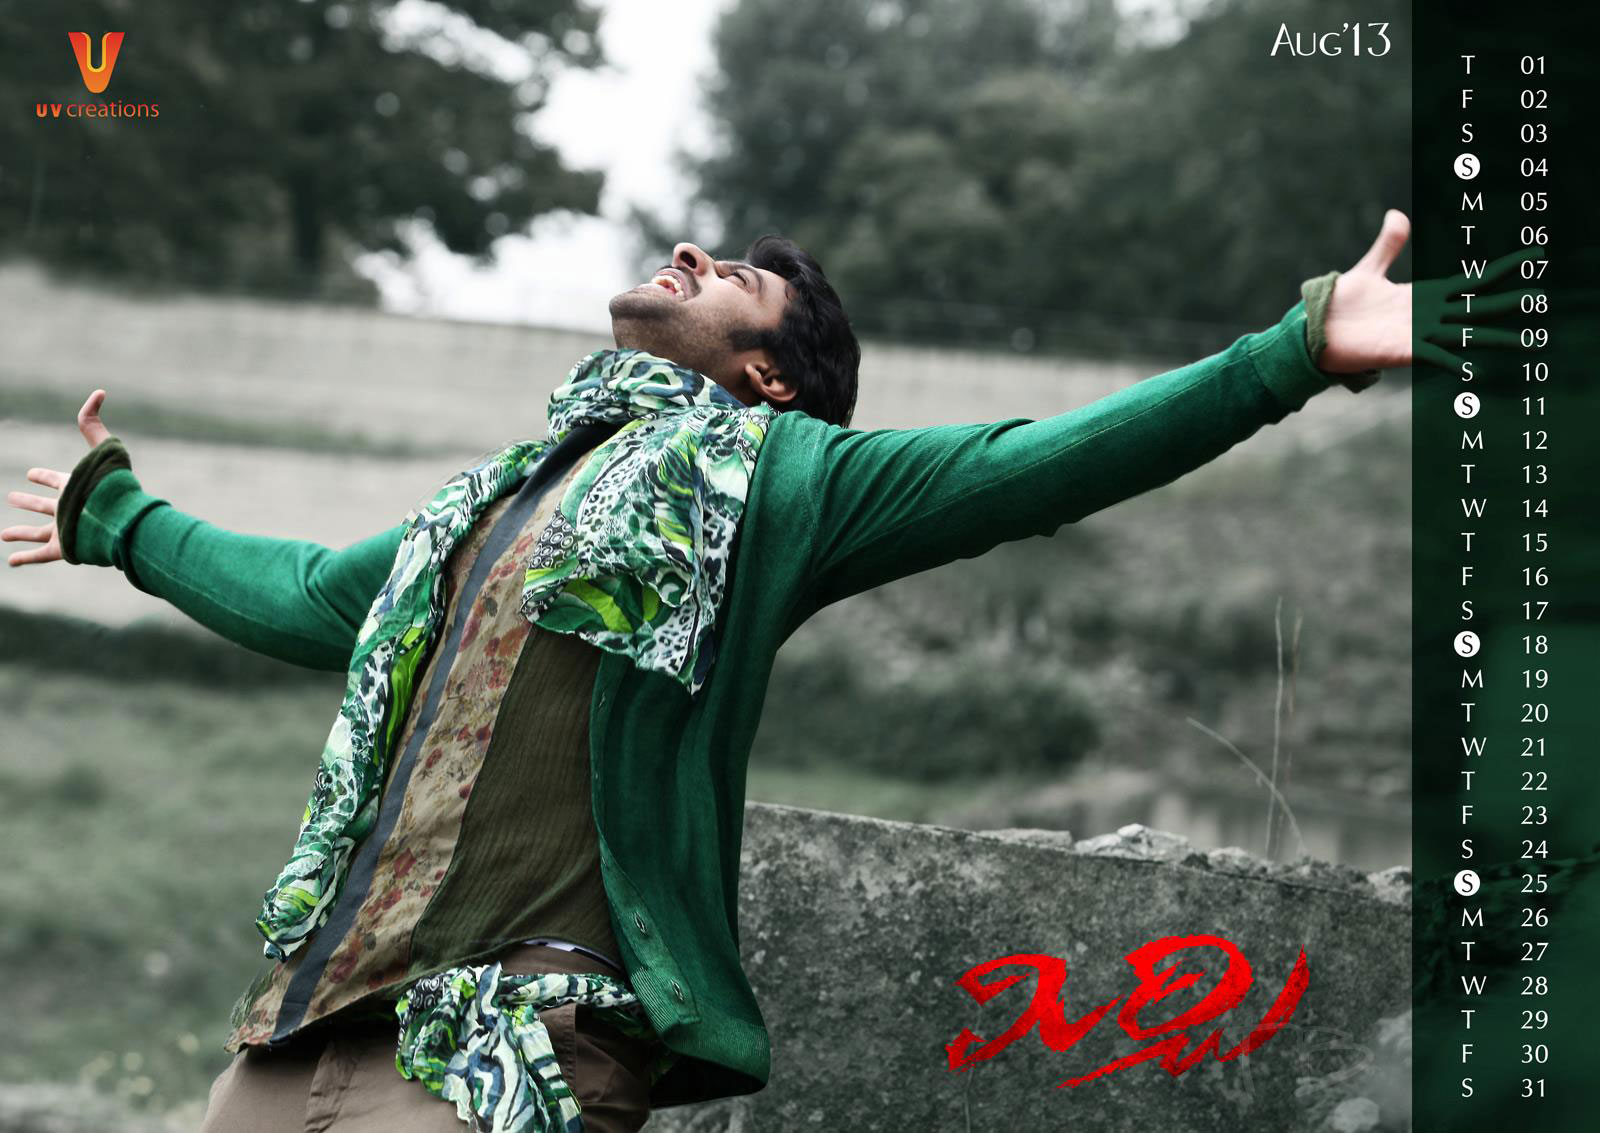 Stylish Prabhas Hq Wallpaper In Rebel: Prabhash Mirchi 2013 Calendar Wallpapers Photos